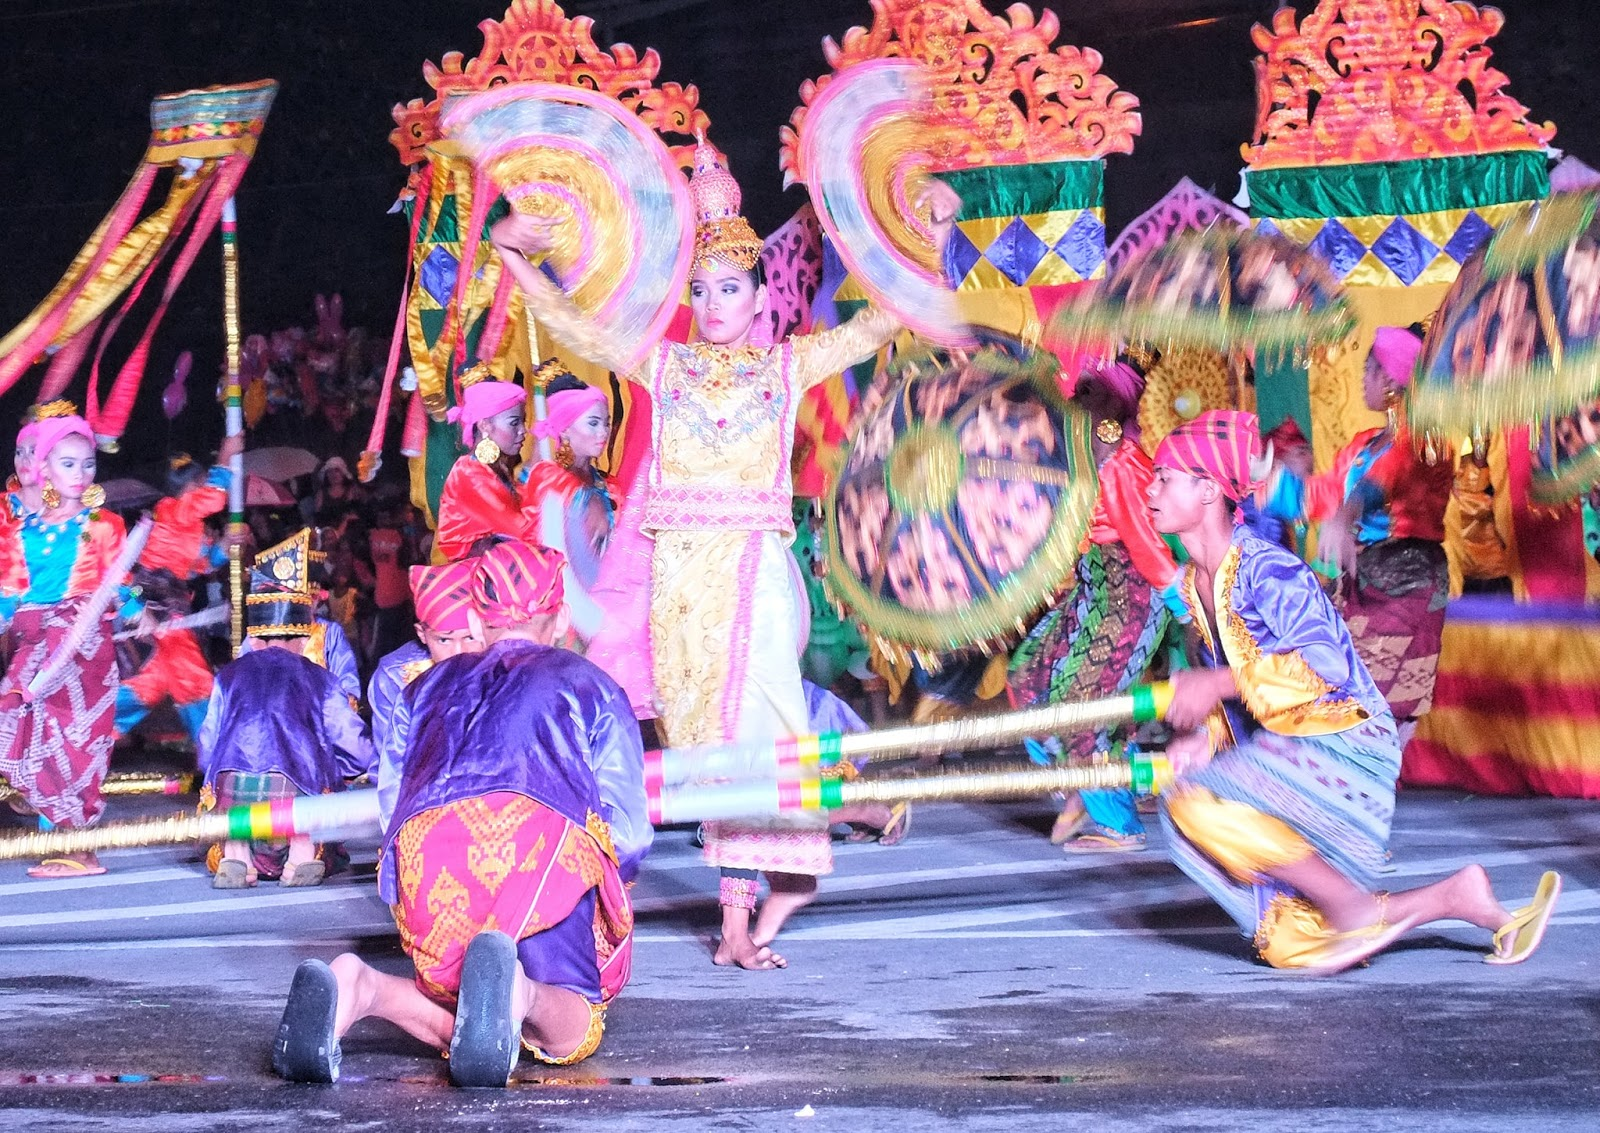 Contingent from Matalam, Cotabato bags Hinugyaw Festival 2019 Pyesta Kolon Datal Street Dancing Competition